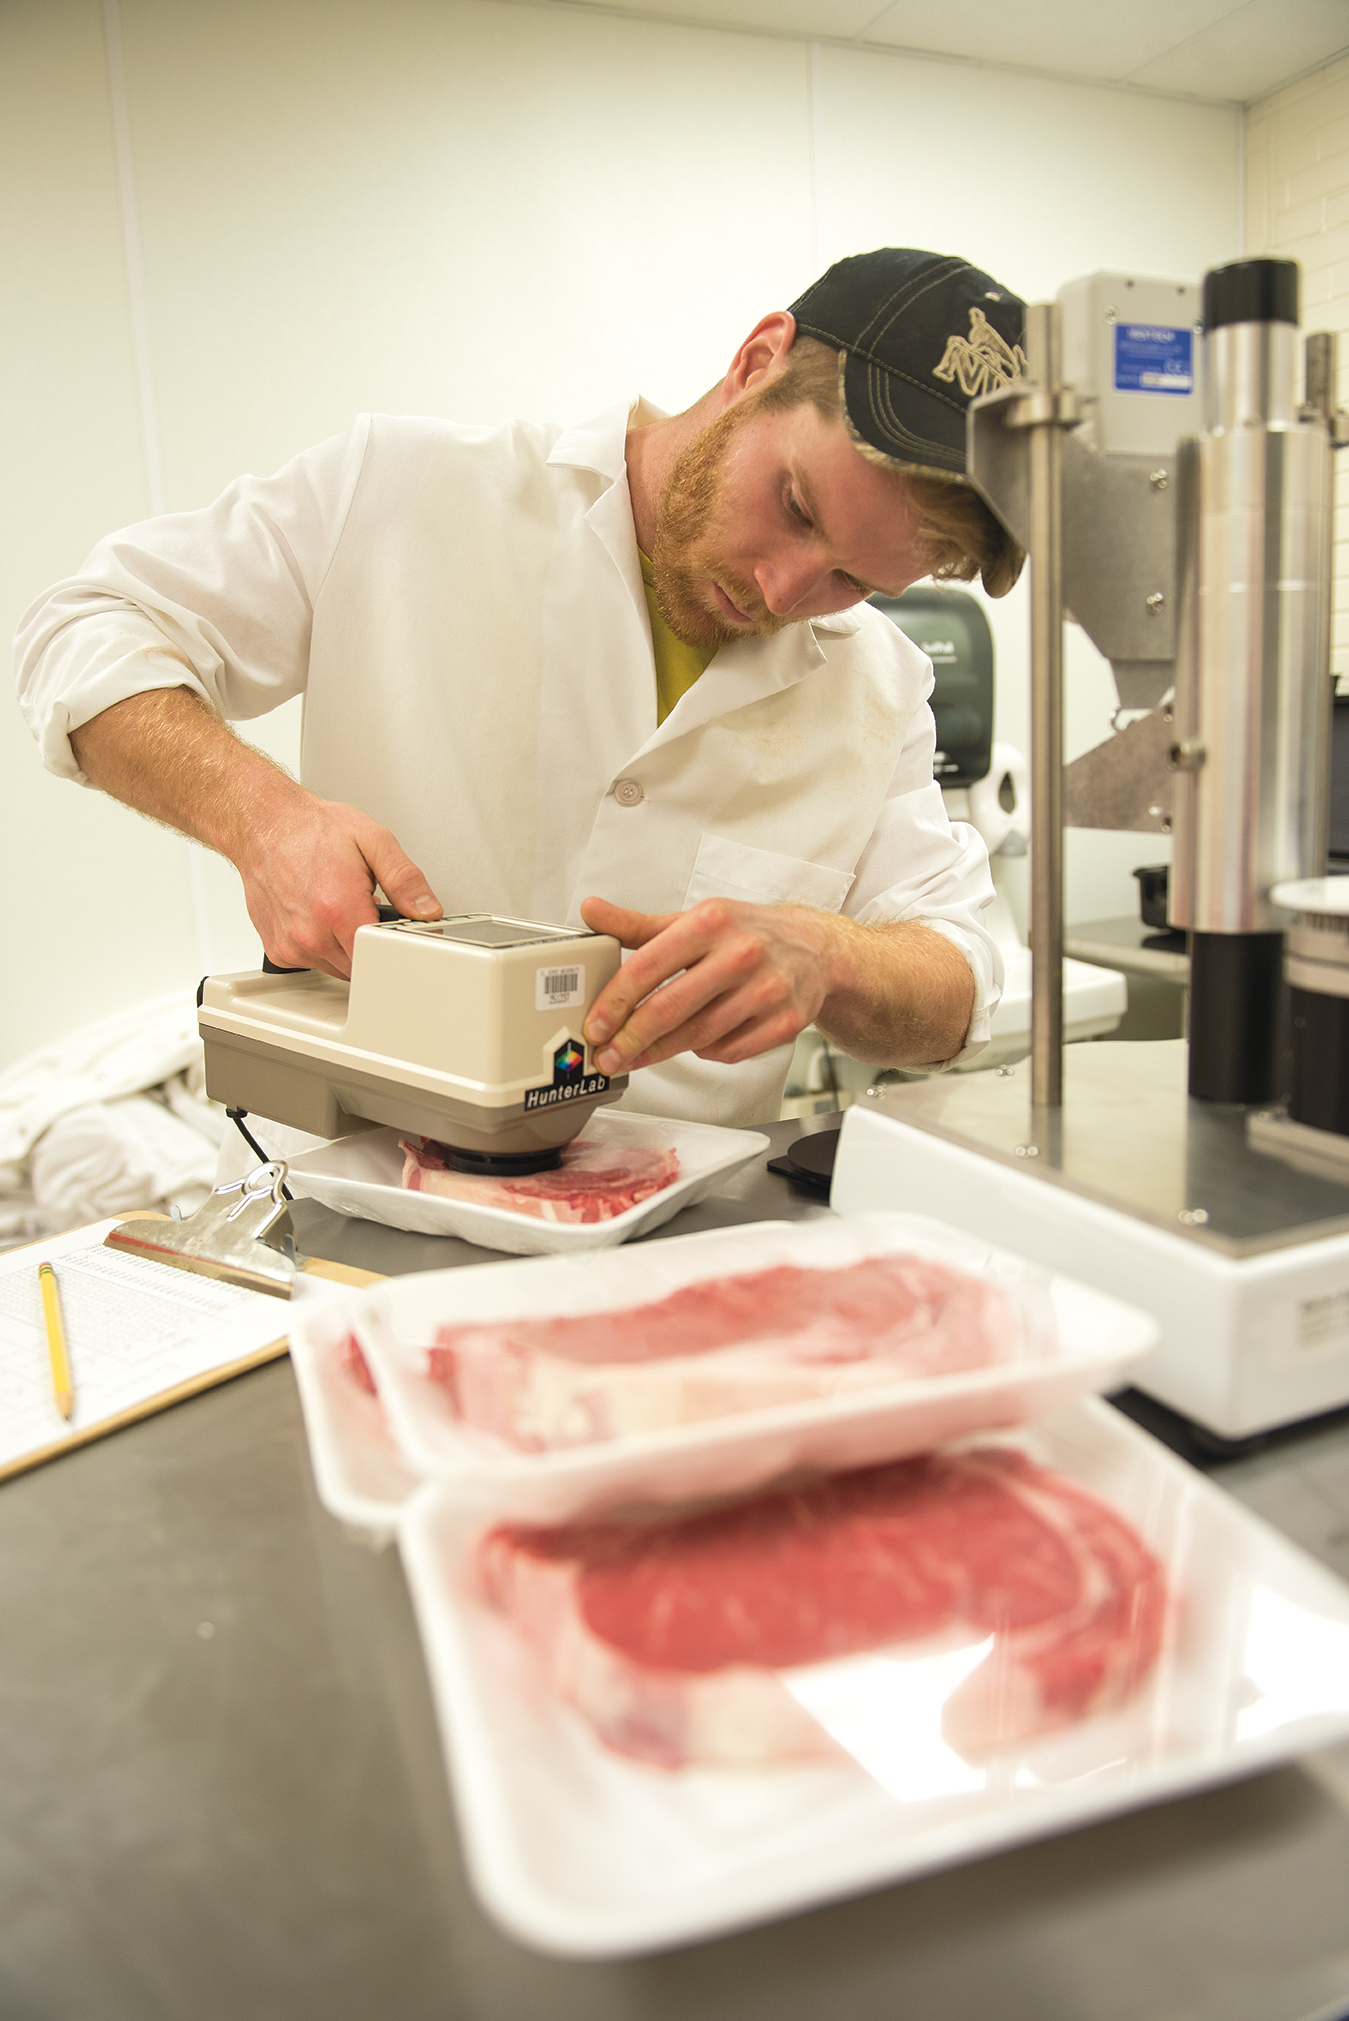 Parmenter uses a colorimeter to measure the color of the rib-eye steaks produced by the cattle. The researchers checked the steaks' color four times in seven days to measure the color changes the steaks would undergo in a retailer's case.